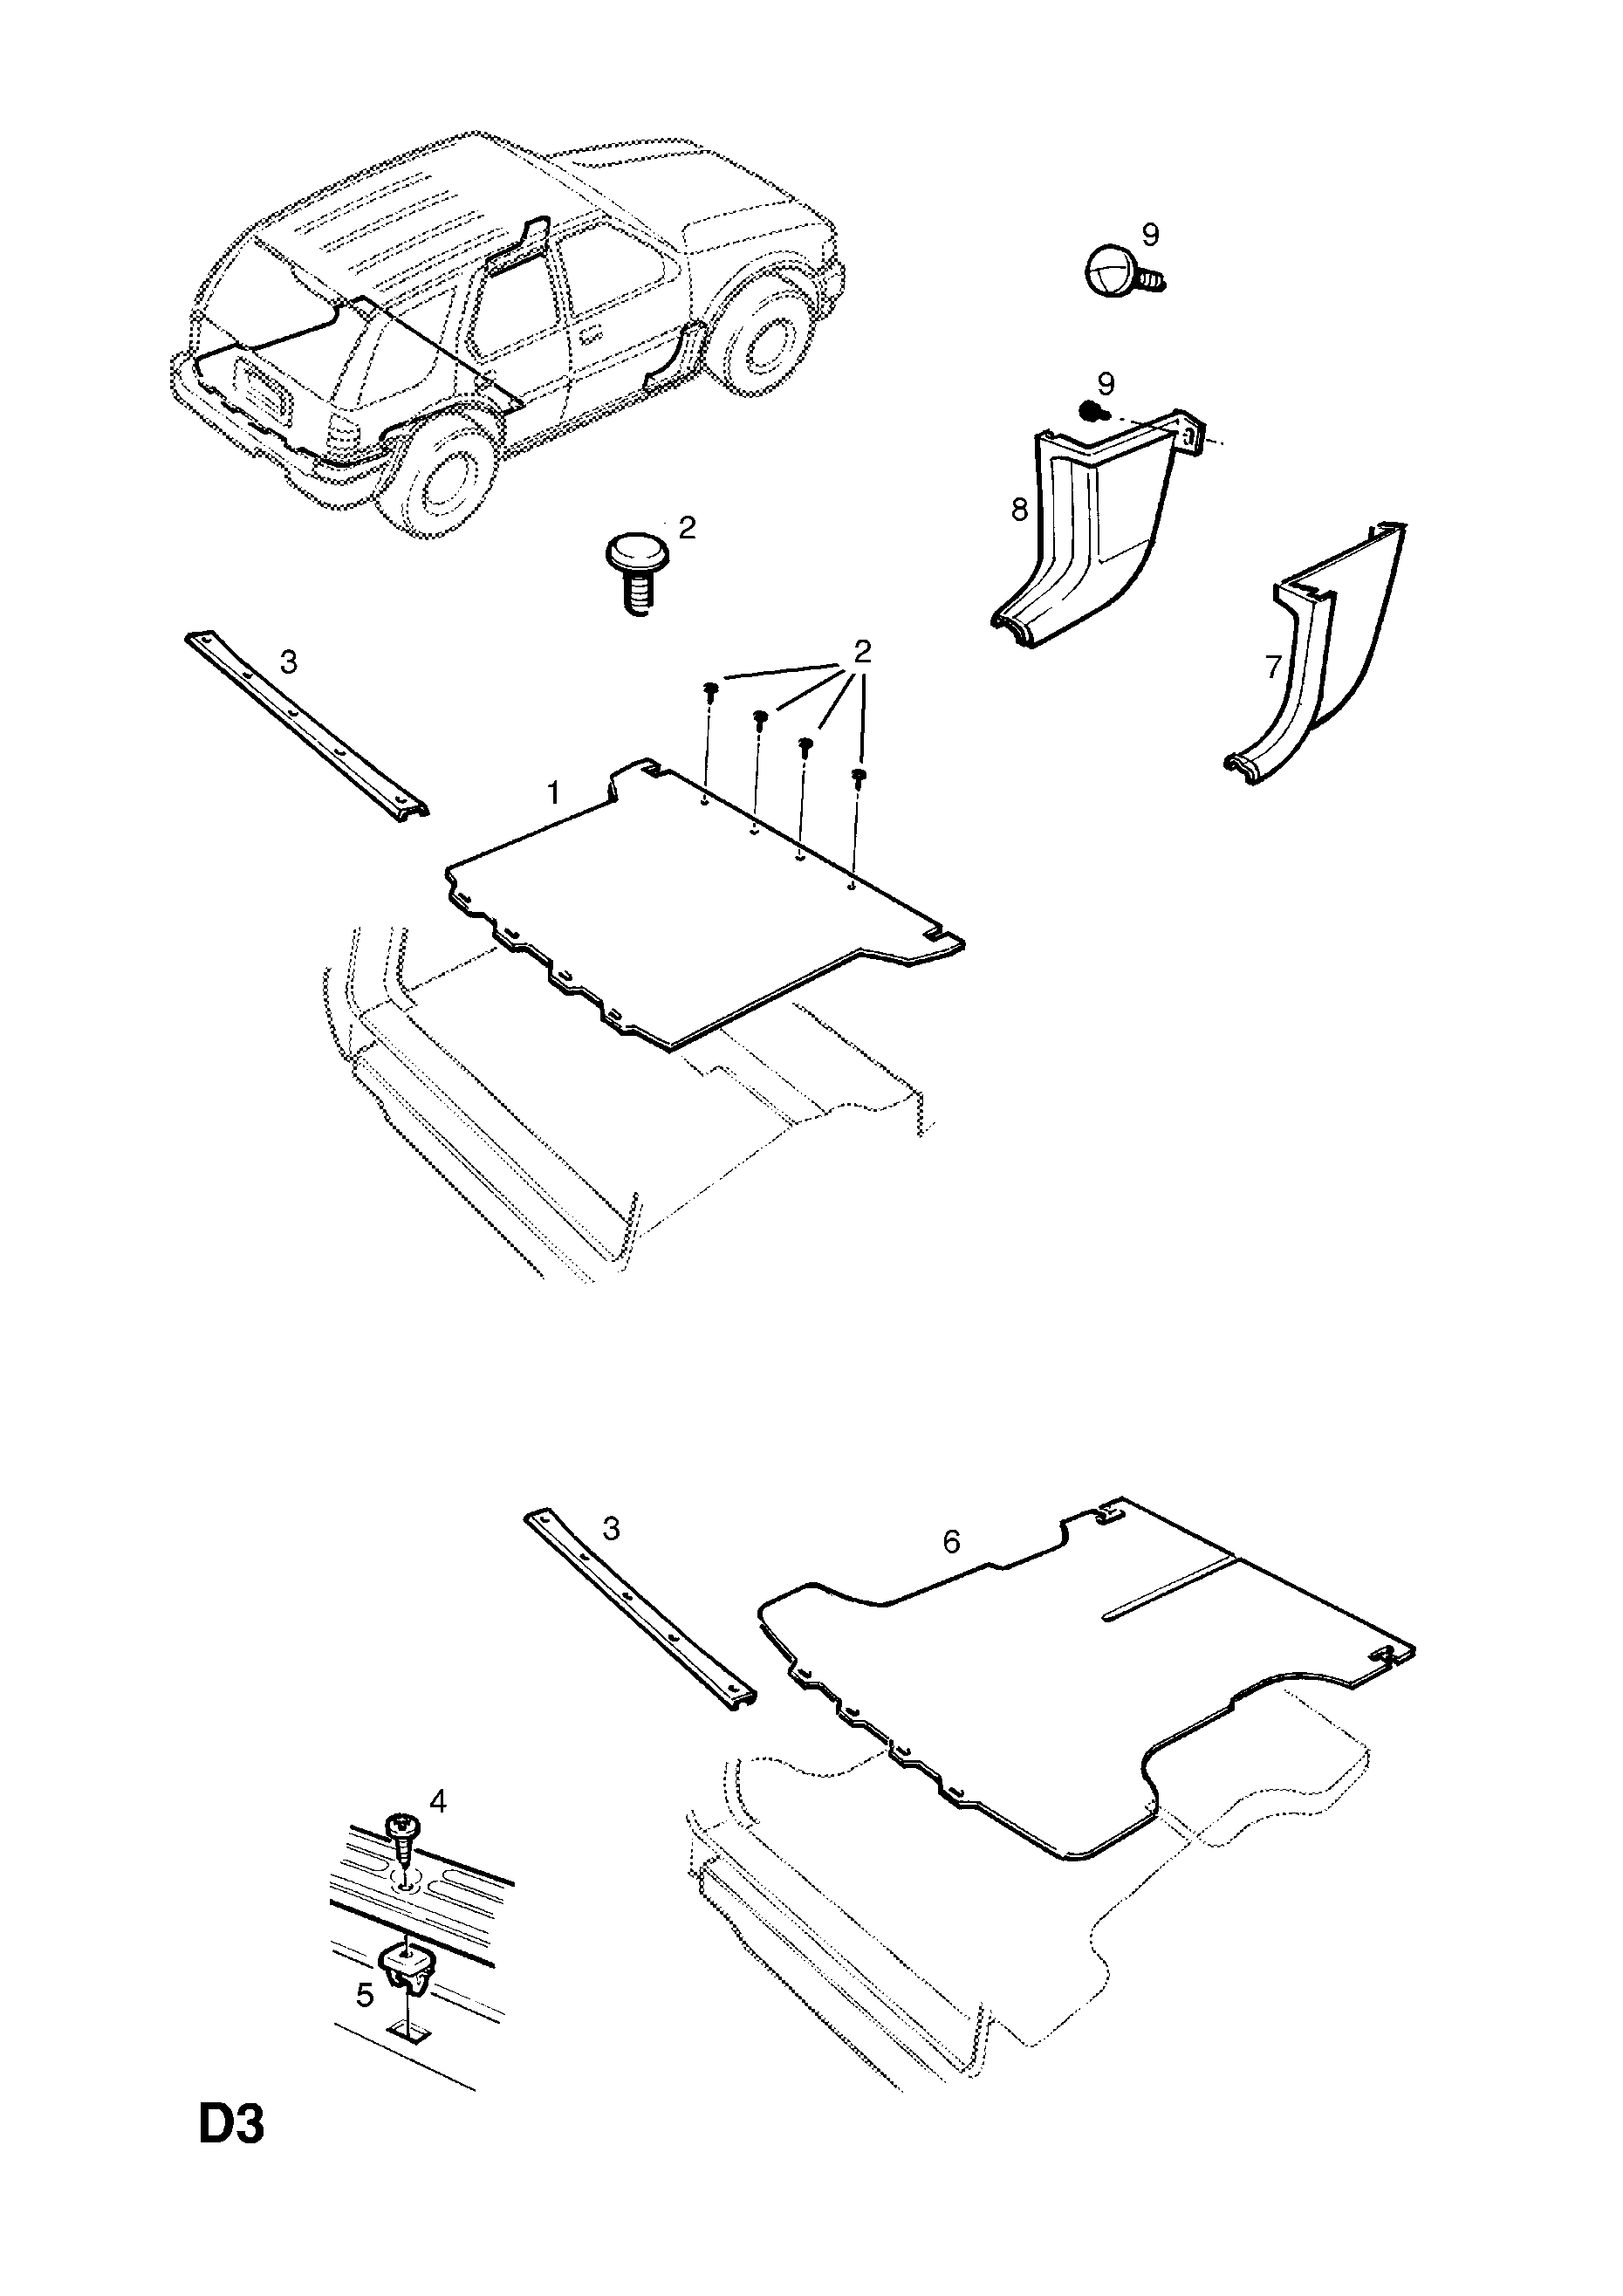 Basic Car Diagram Scuttle Detailed Schematic Diagrams Opel Frontera Wiring Trim B